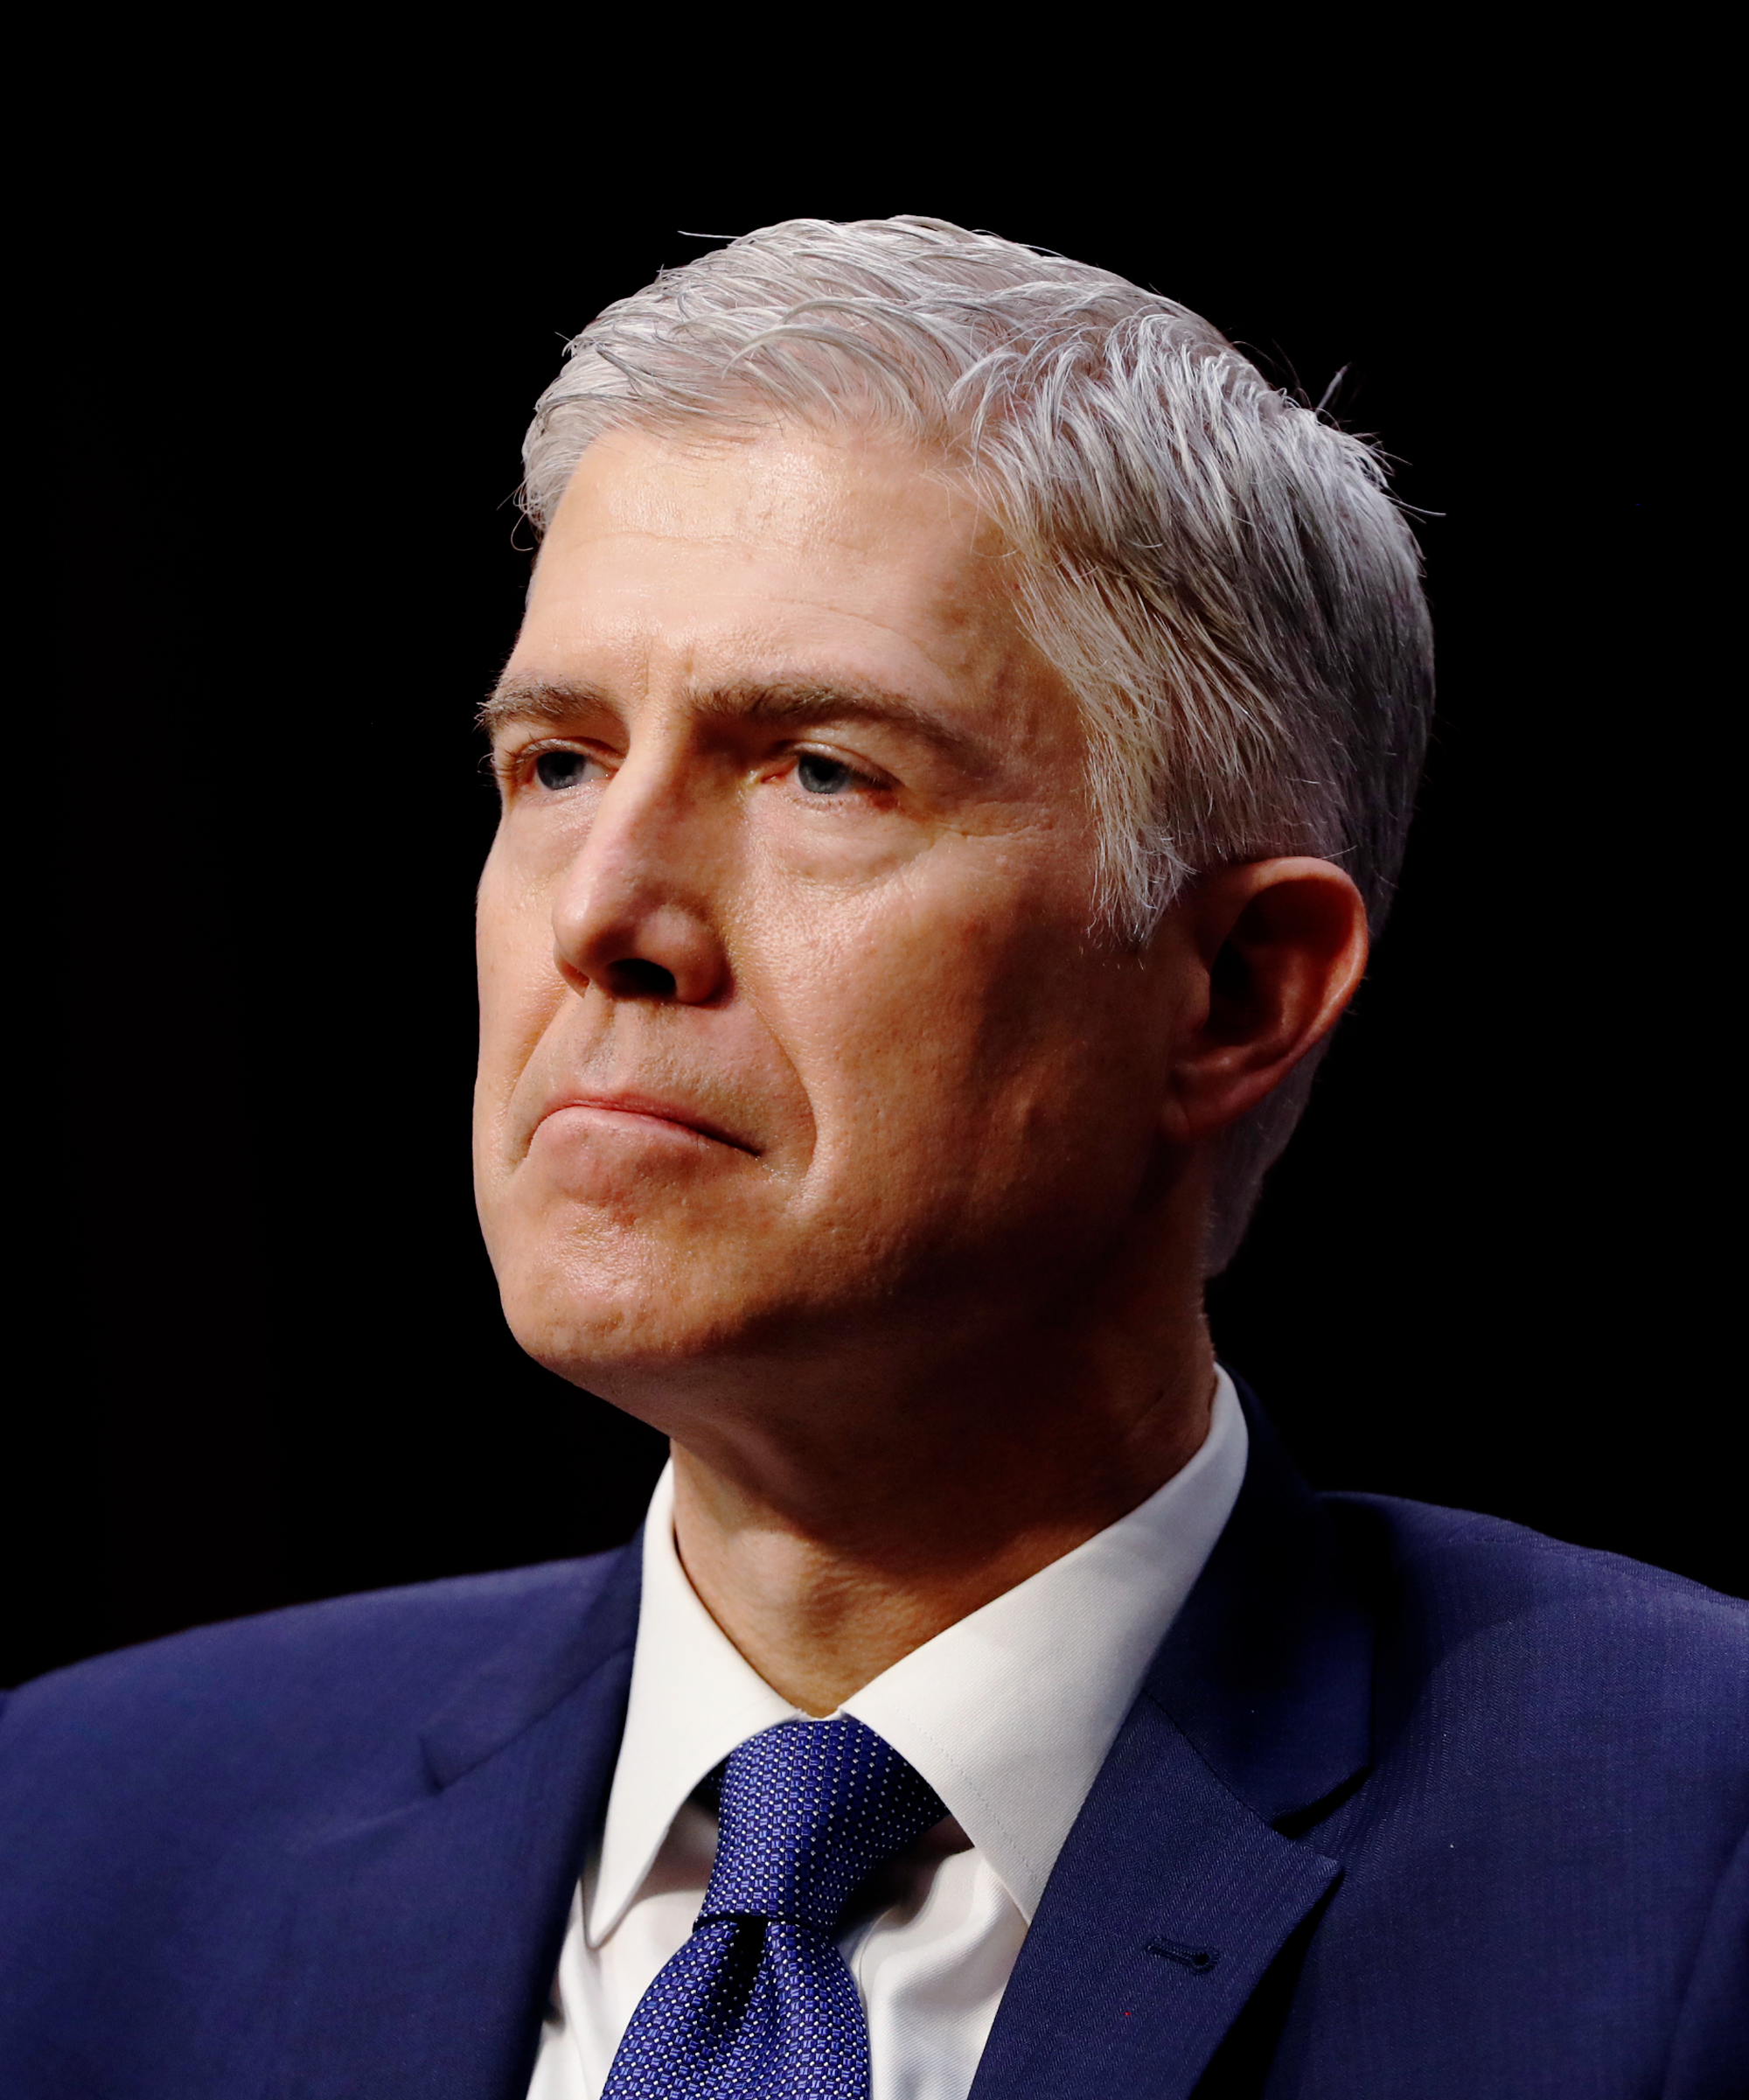 Gorsuch Confirmed To Supreme Court. What Could This Mean For LGBT Community?